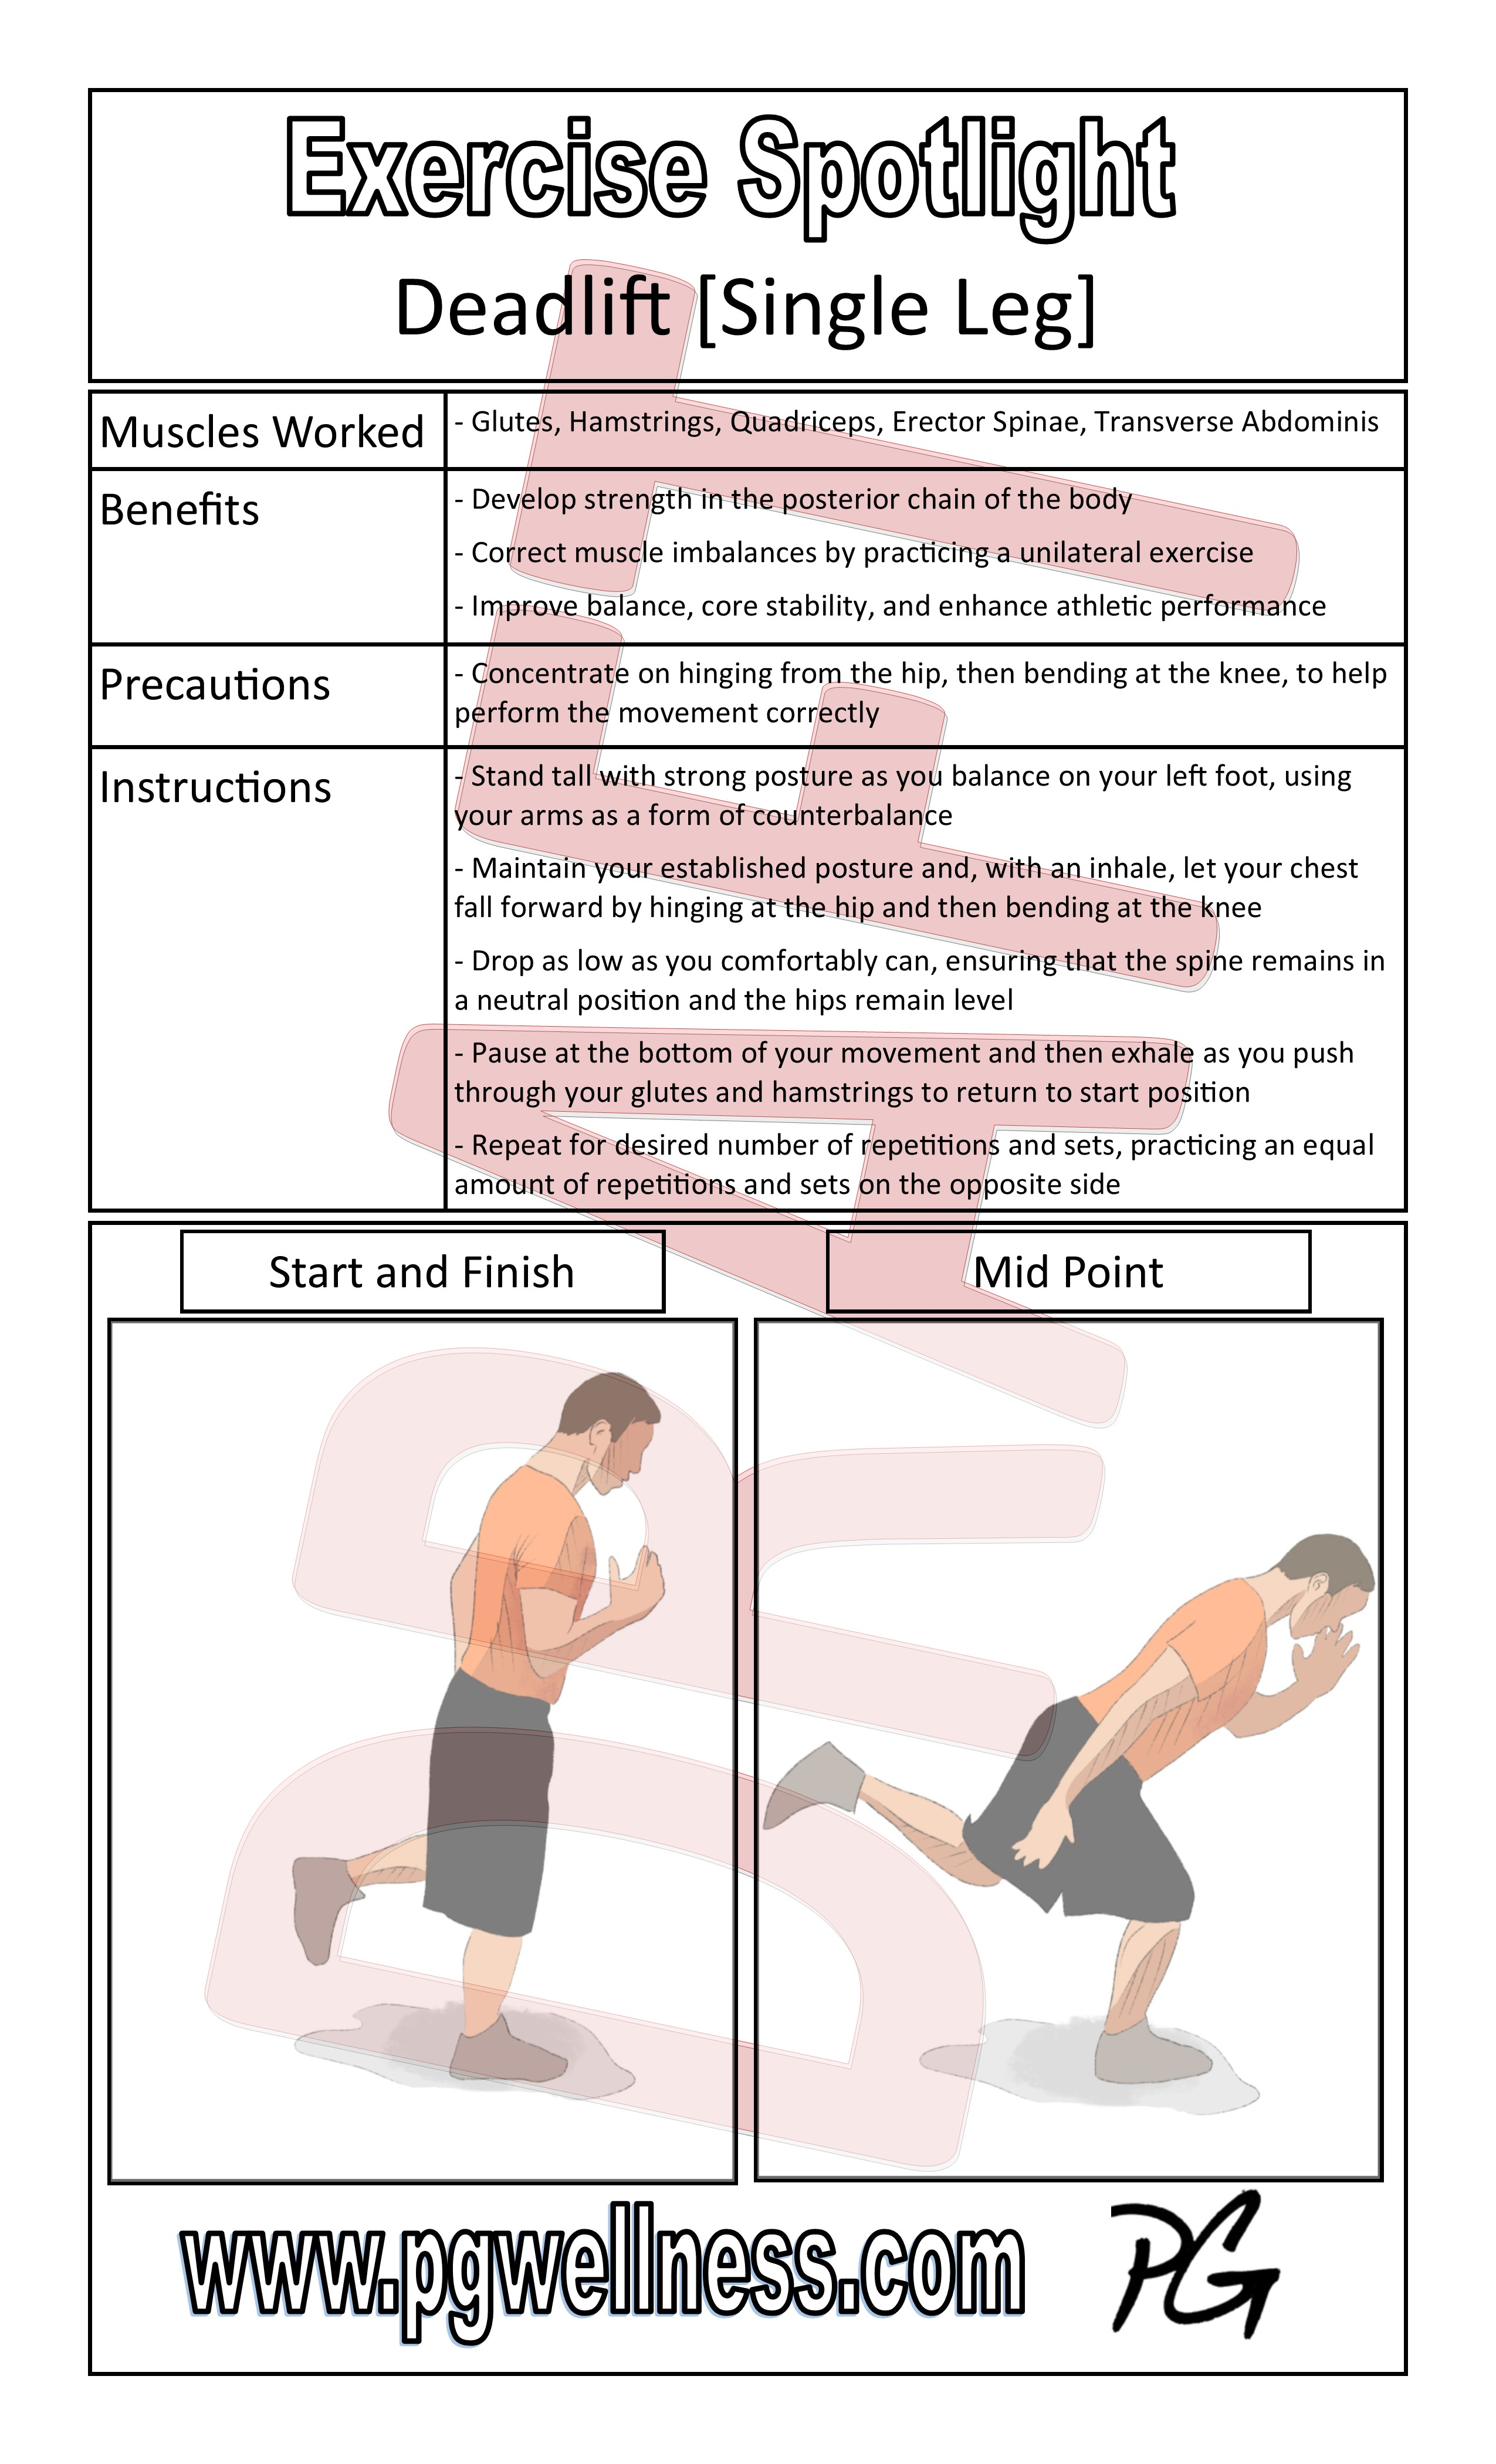 Exercise Spotlight Posters | PGWellness